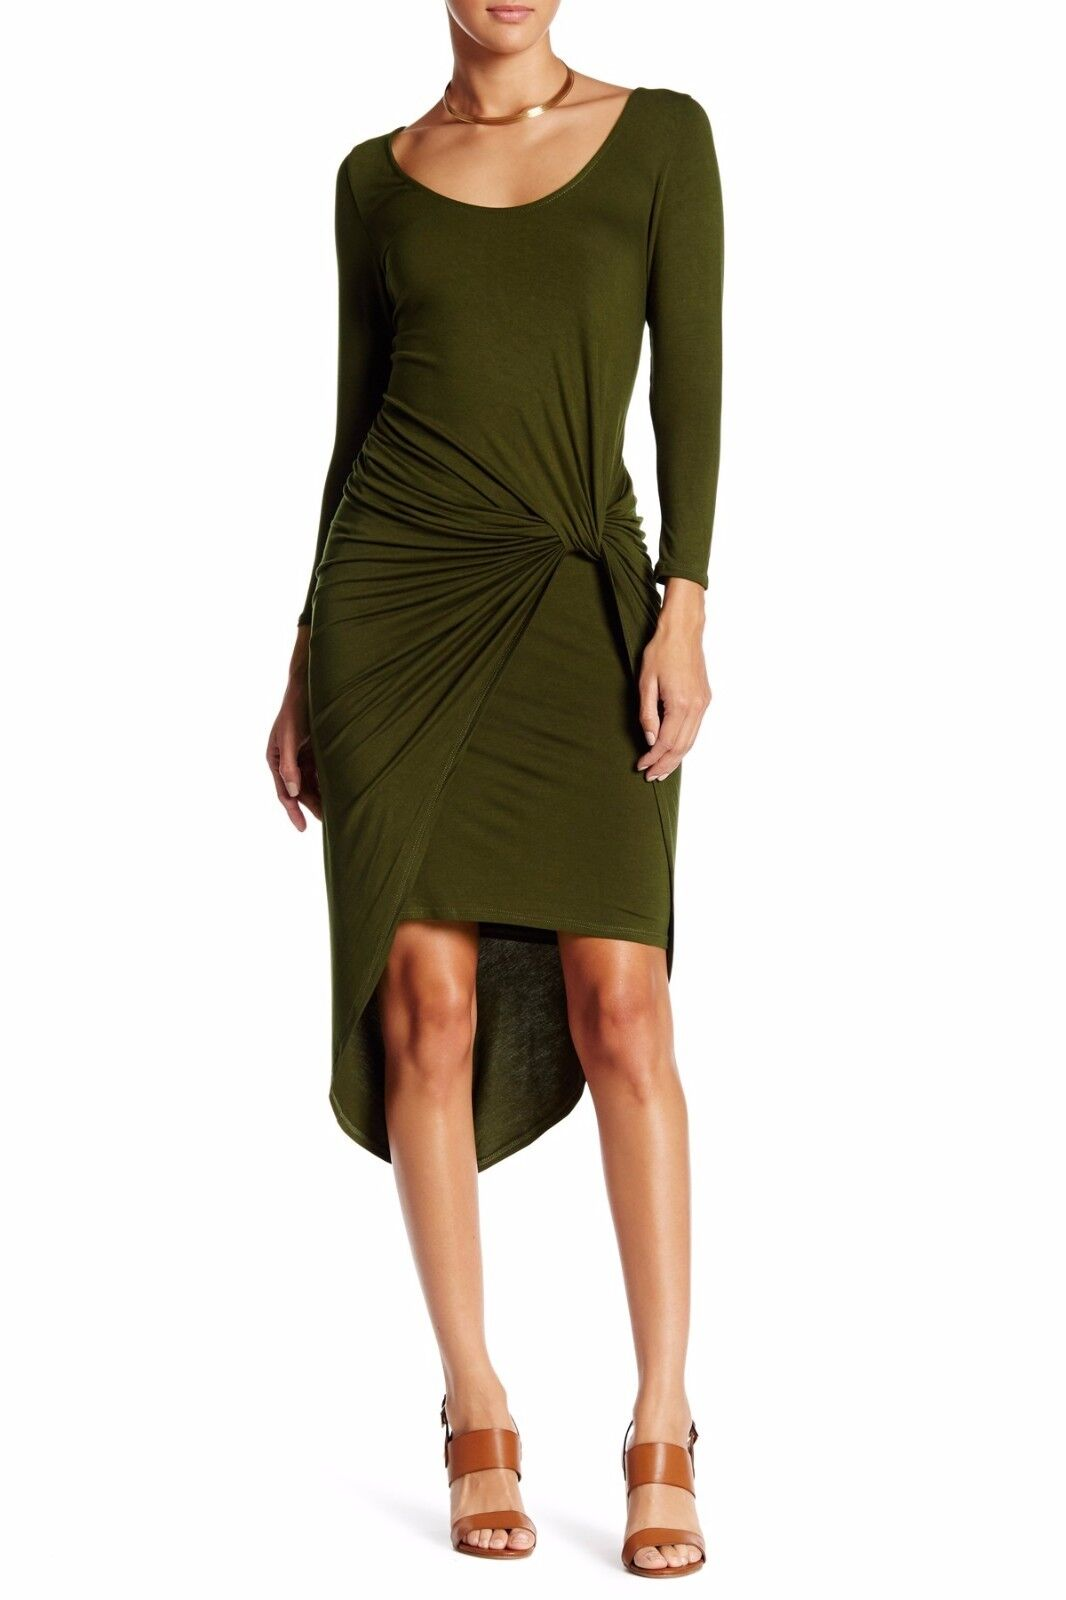 NWOT The Vanity Room 3 4 Sleeve knotted asymmetrical Grün olive Cargo Dress XS